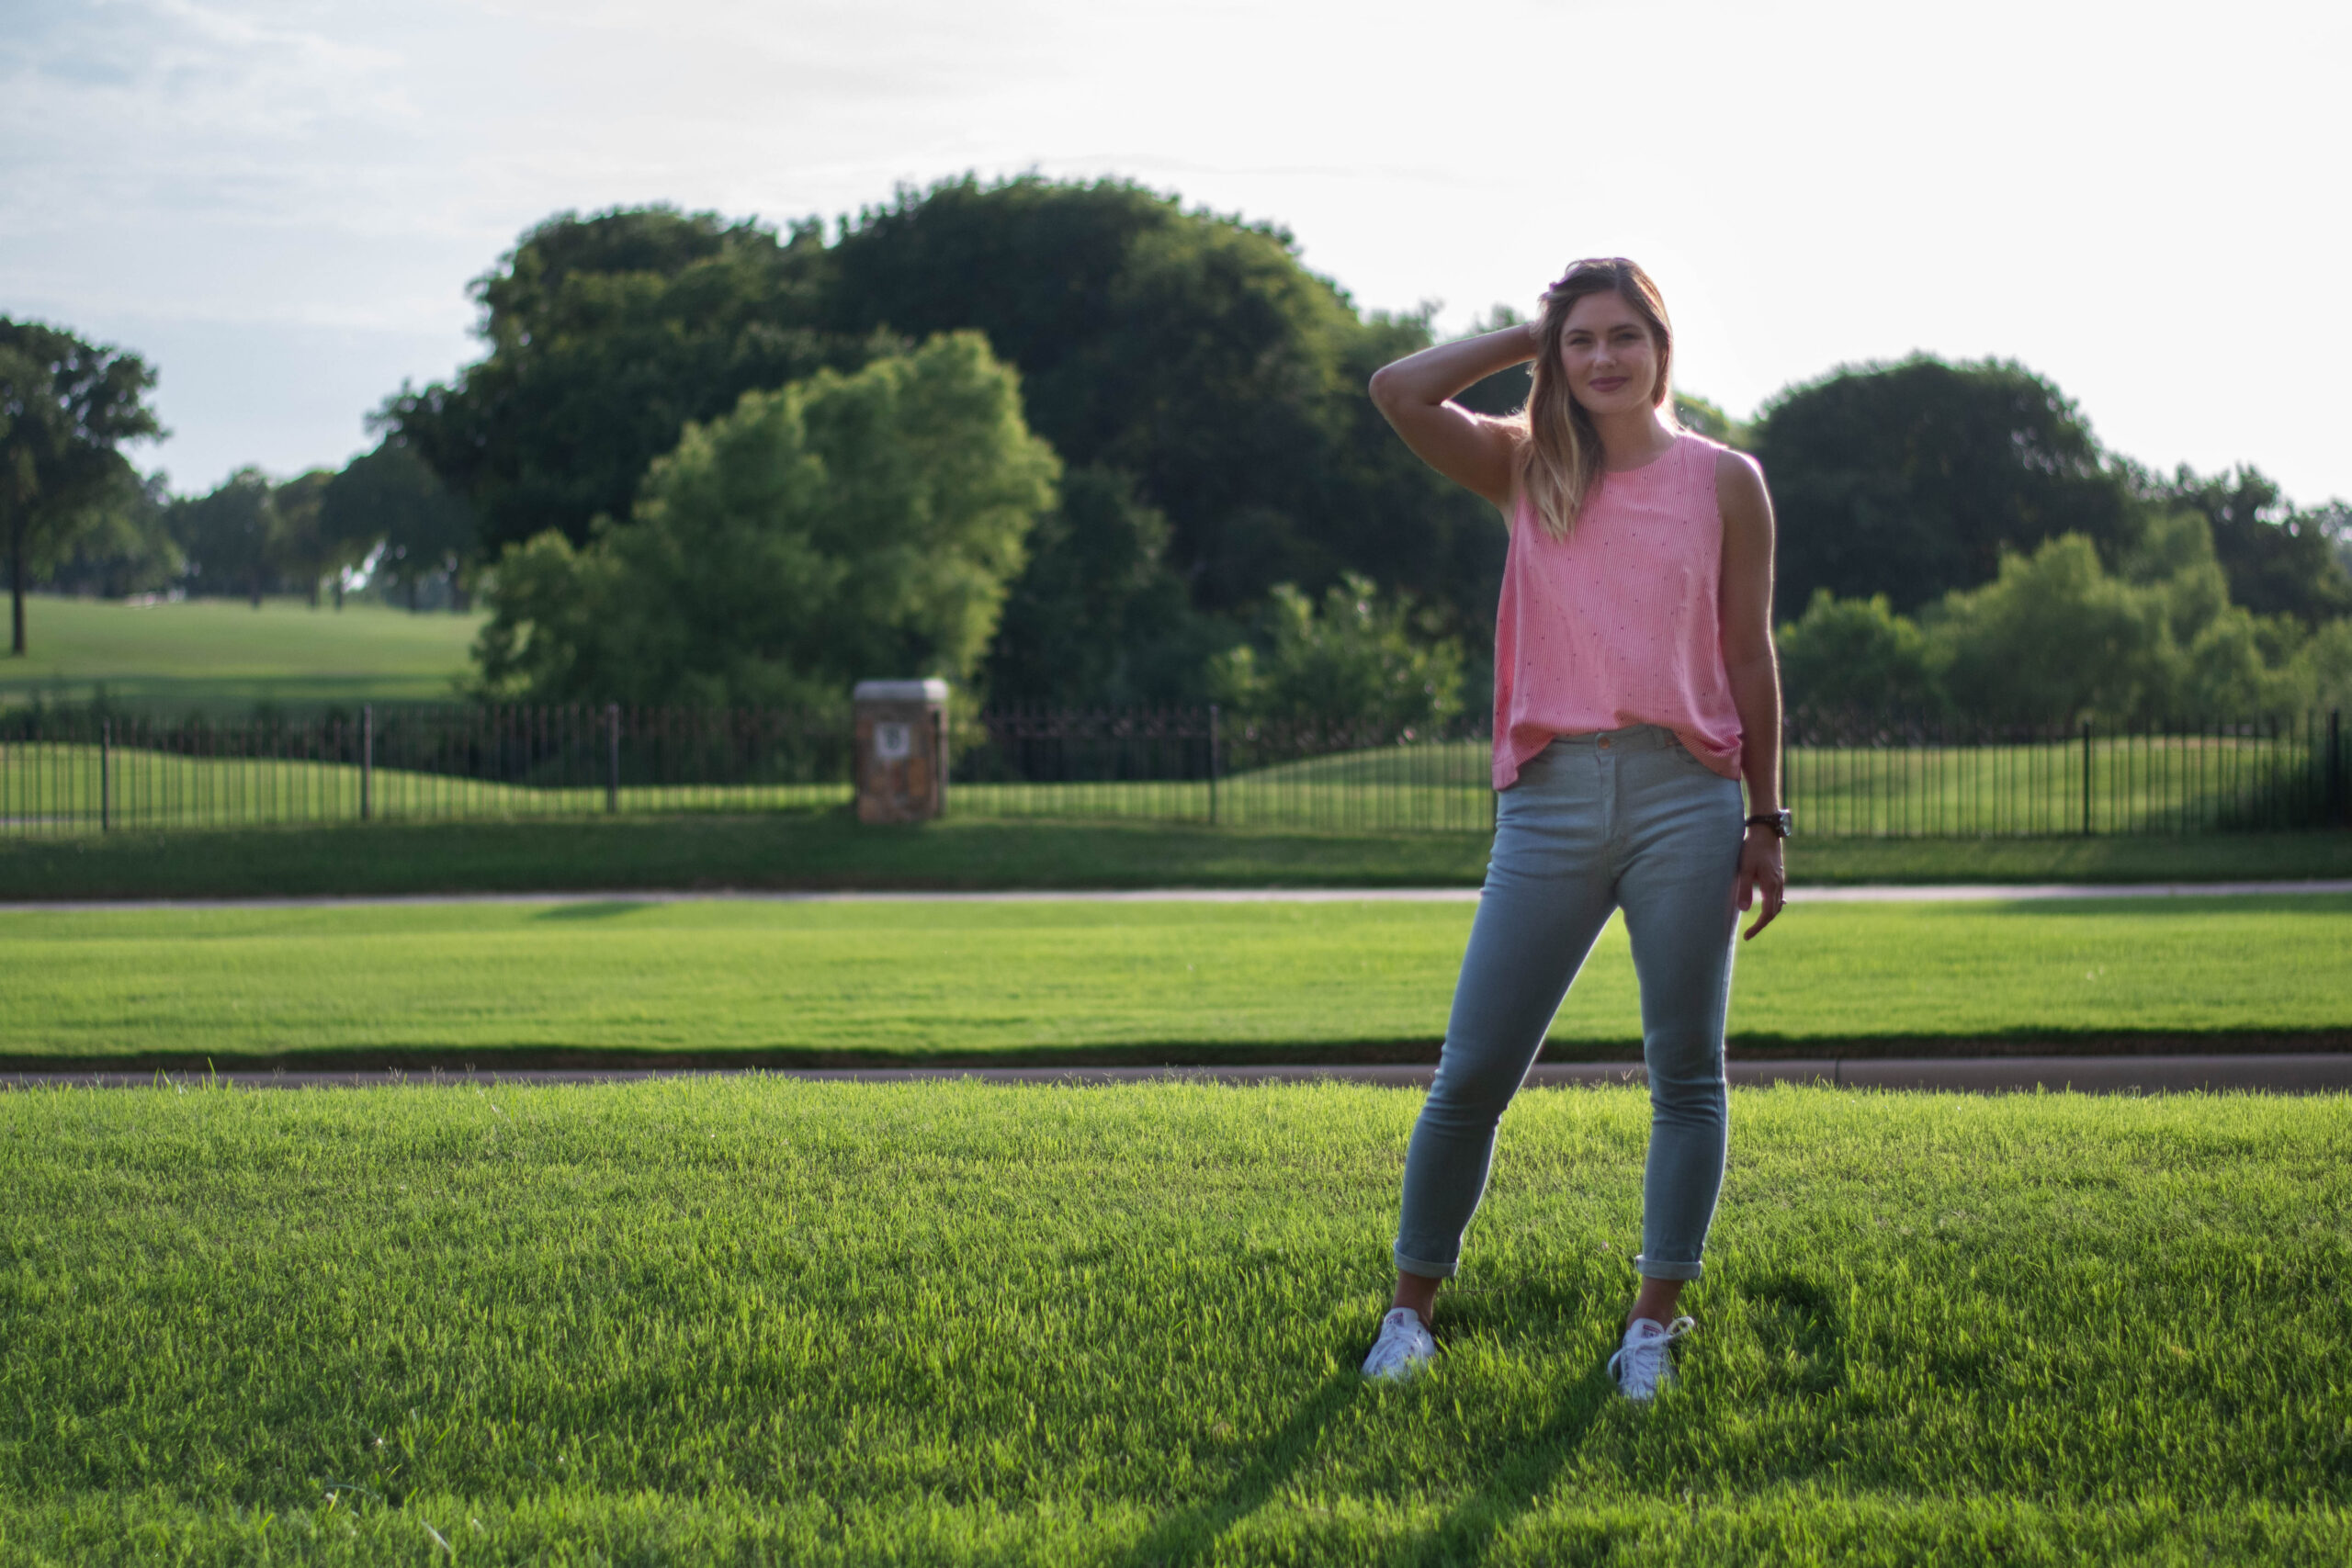 Elizabeth stands on the grass during golden hour wearing a pair of light colored handmade denim jeans, a red and white striped tanktop, and white converse tennishoes. In the background are trees and bushes. Her stance leans slightly to her left, and her right arm is bent upwards, keeping her hair out of her face.